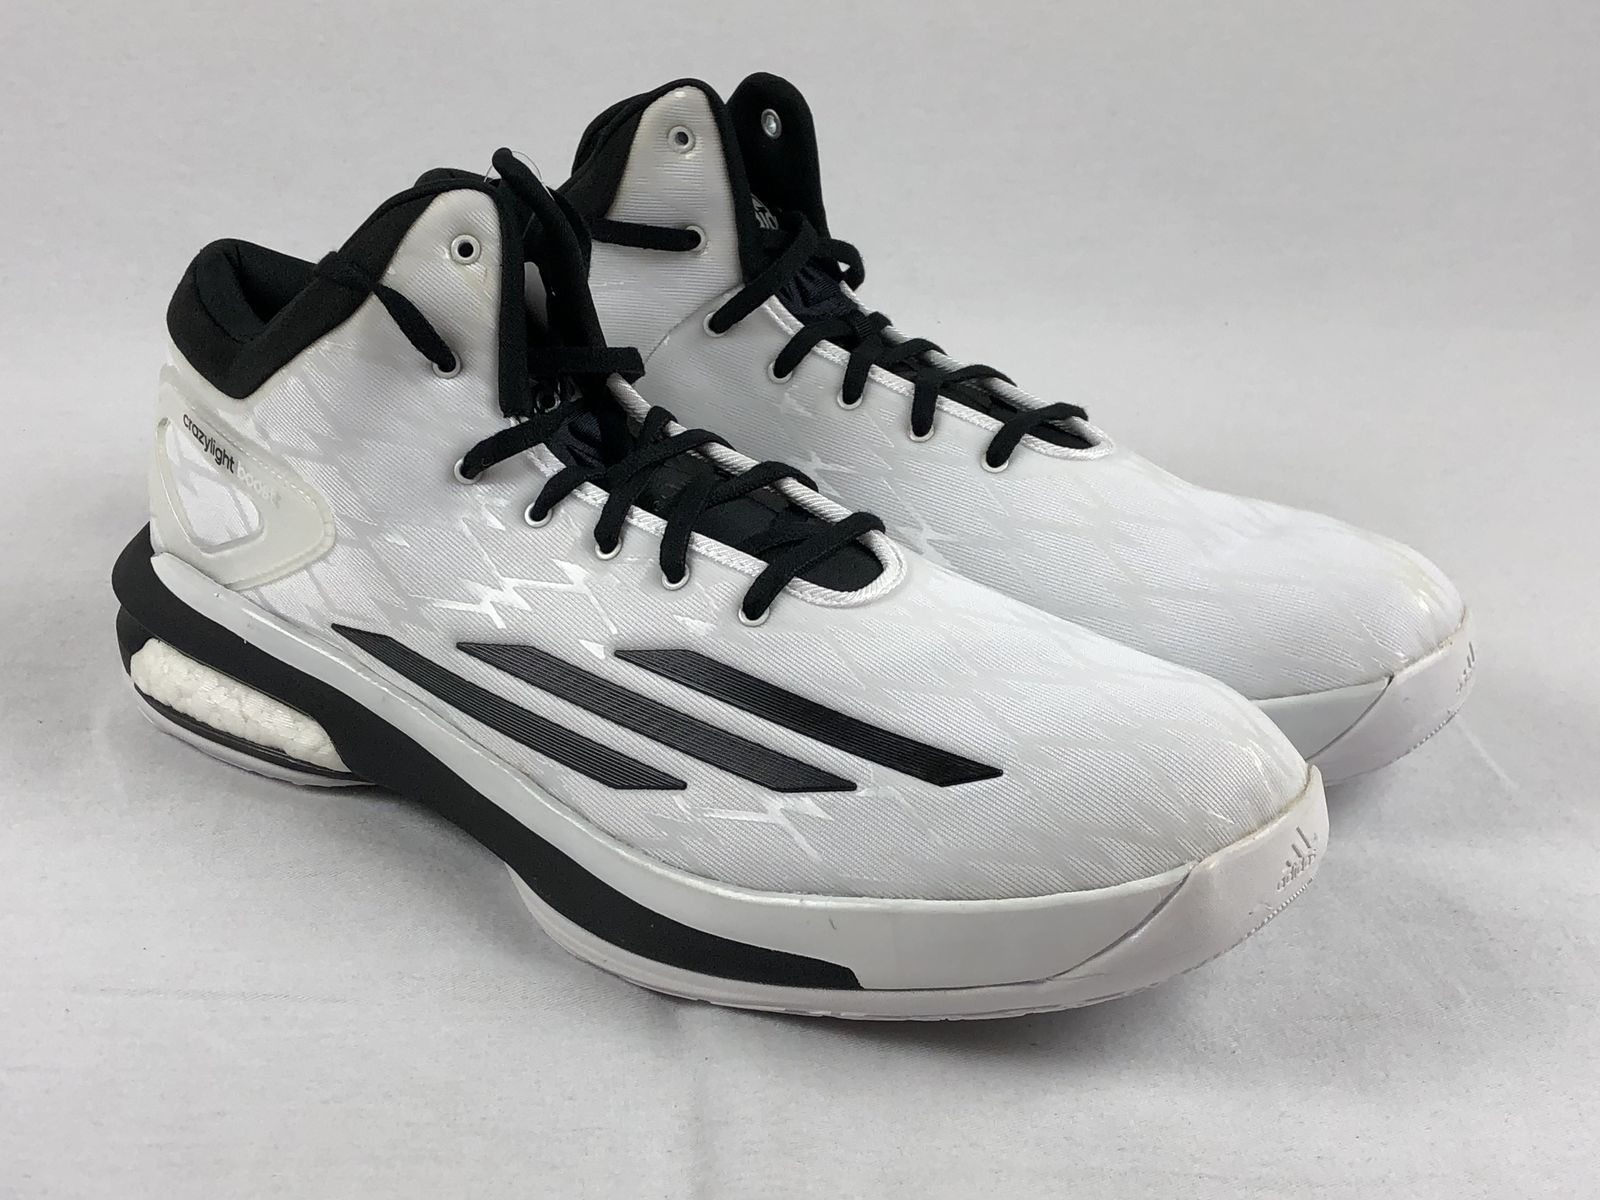 new style 9c16c 91c12 Details about NEW adidas Crazylight Boost - White Basketball Shoes (Mens  Multiple Sizes)